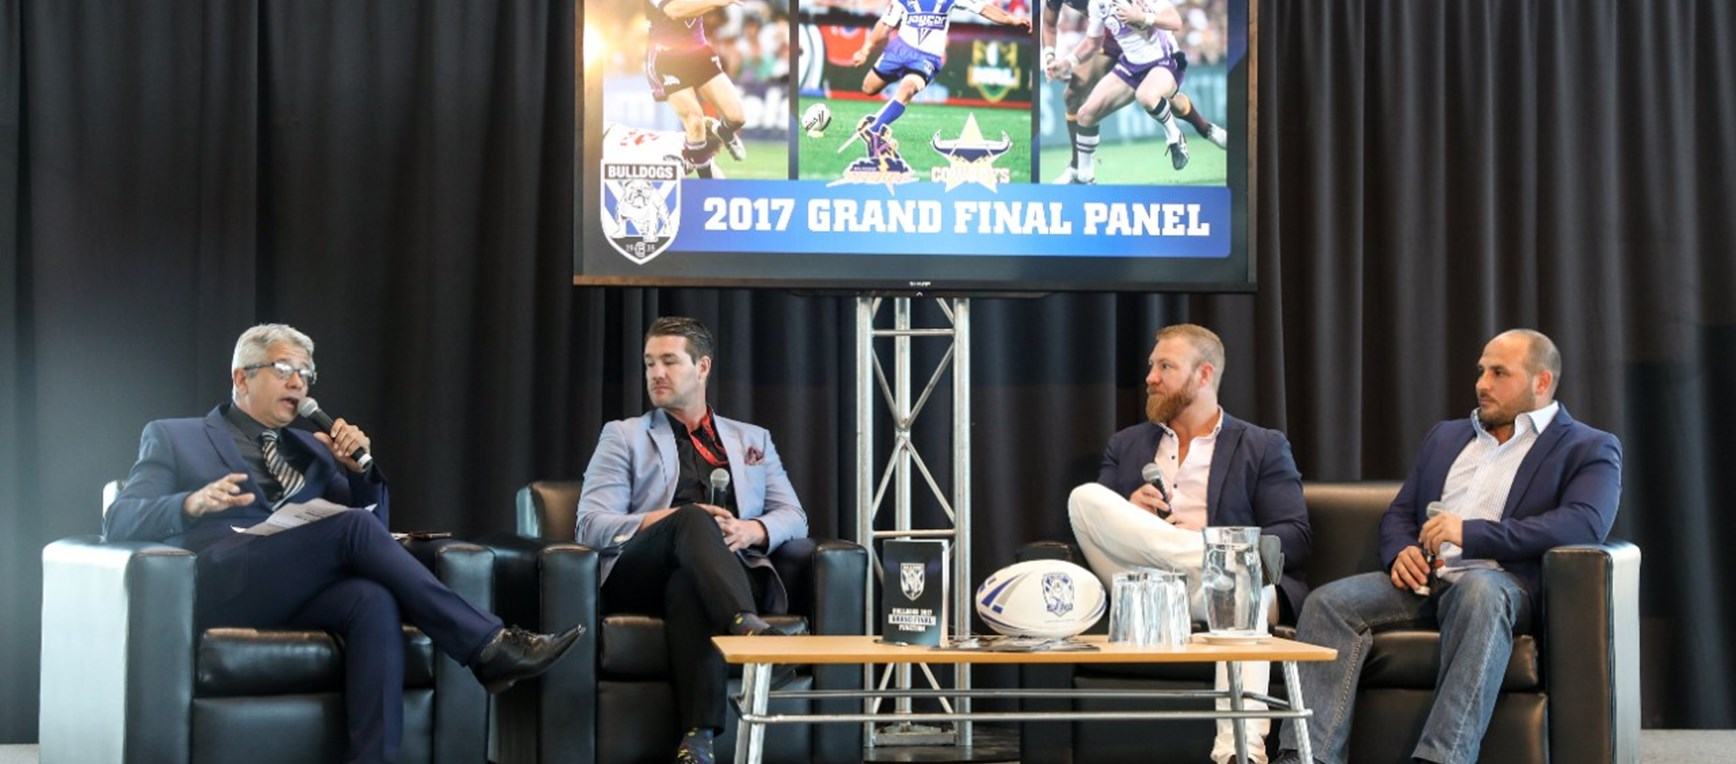 GALLERY: 2017 Corporate Grand Final Event